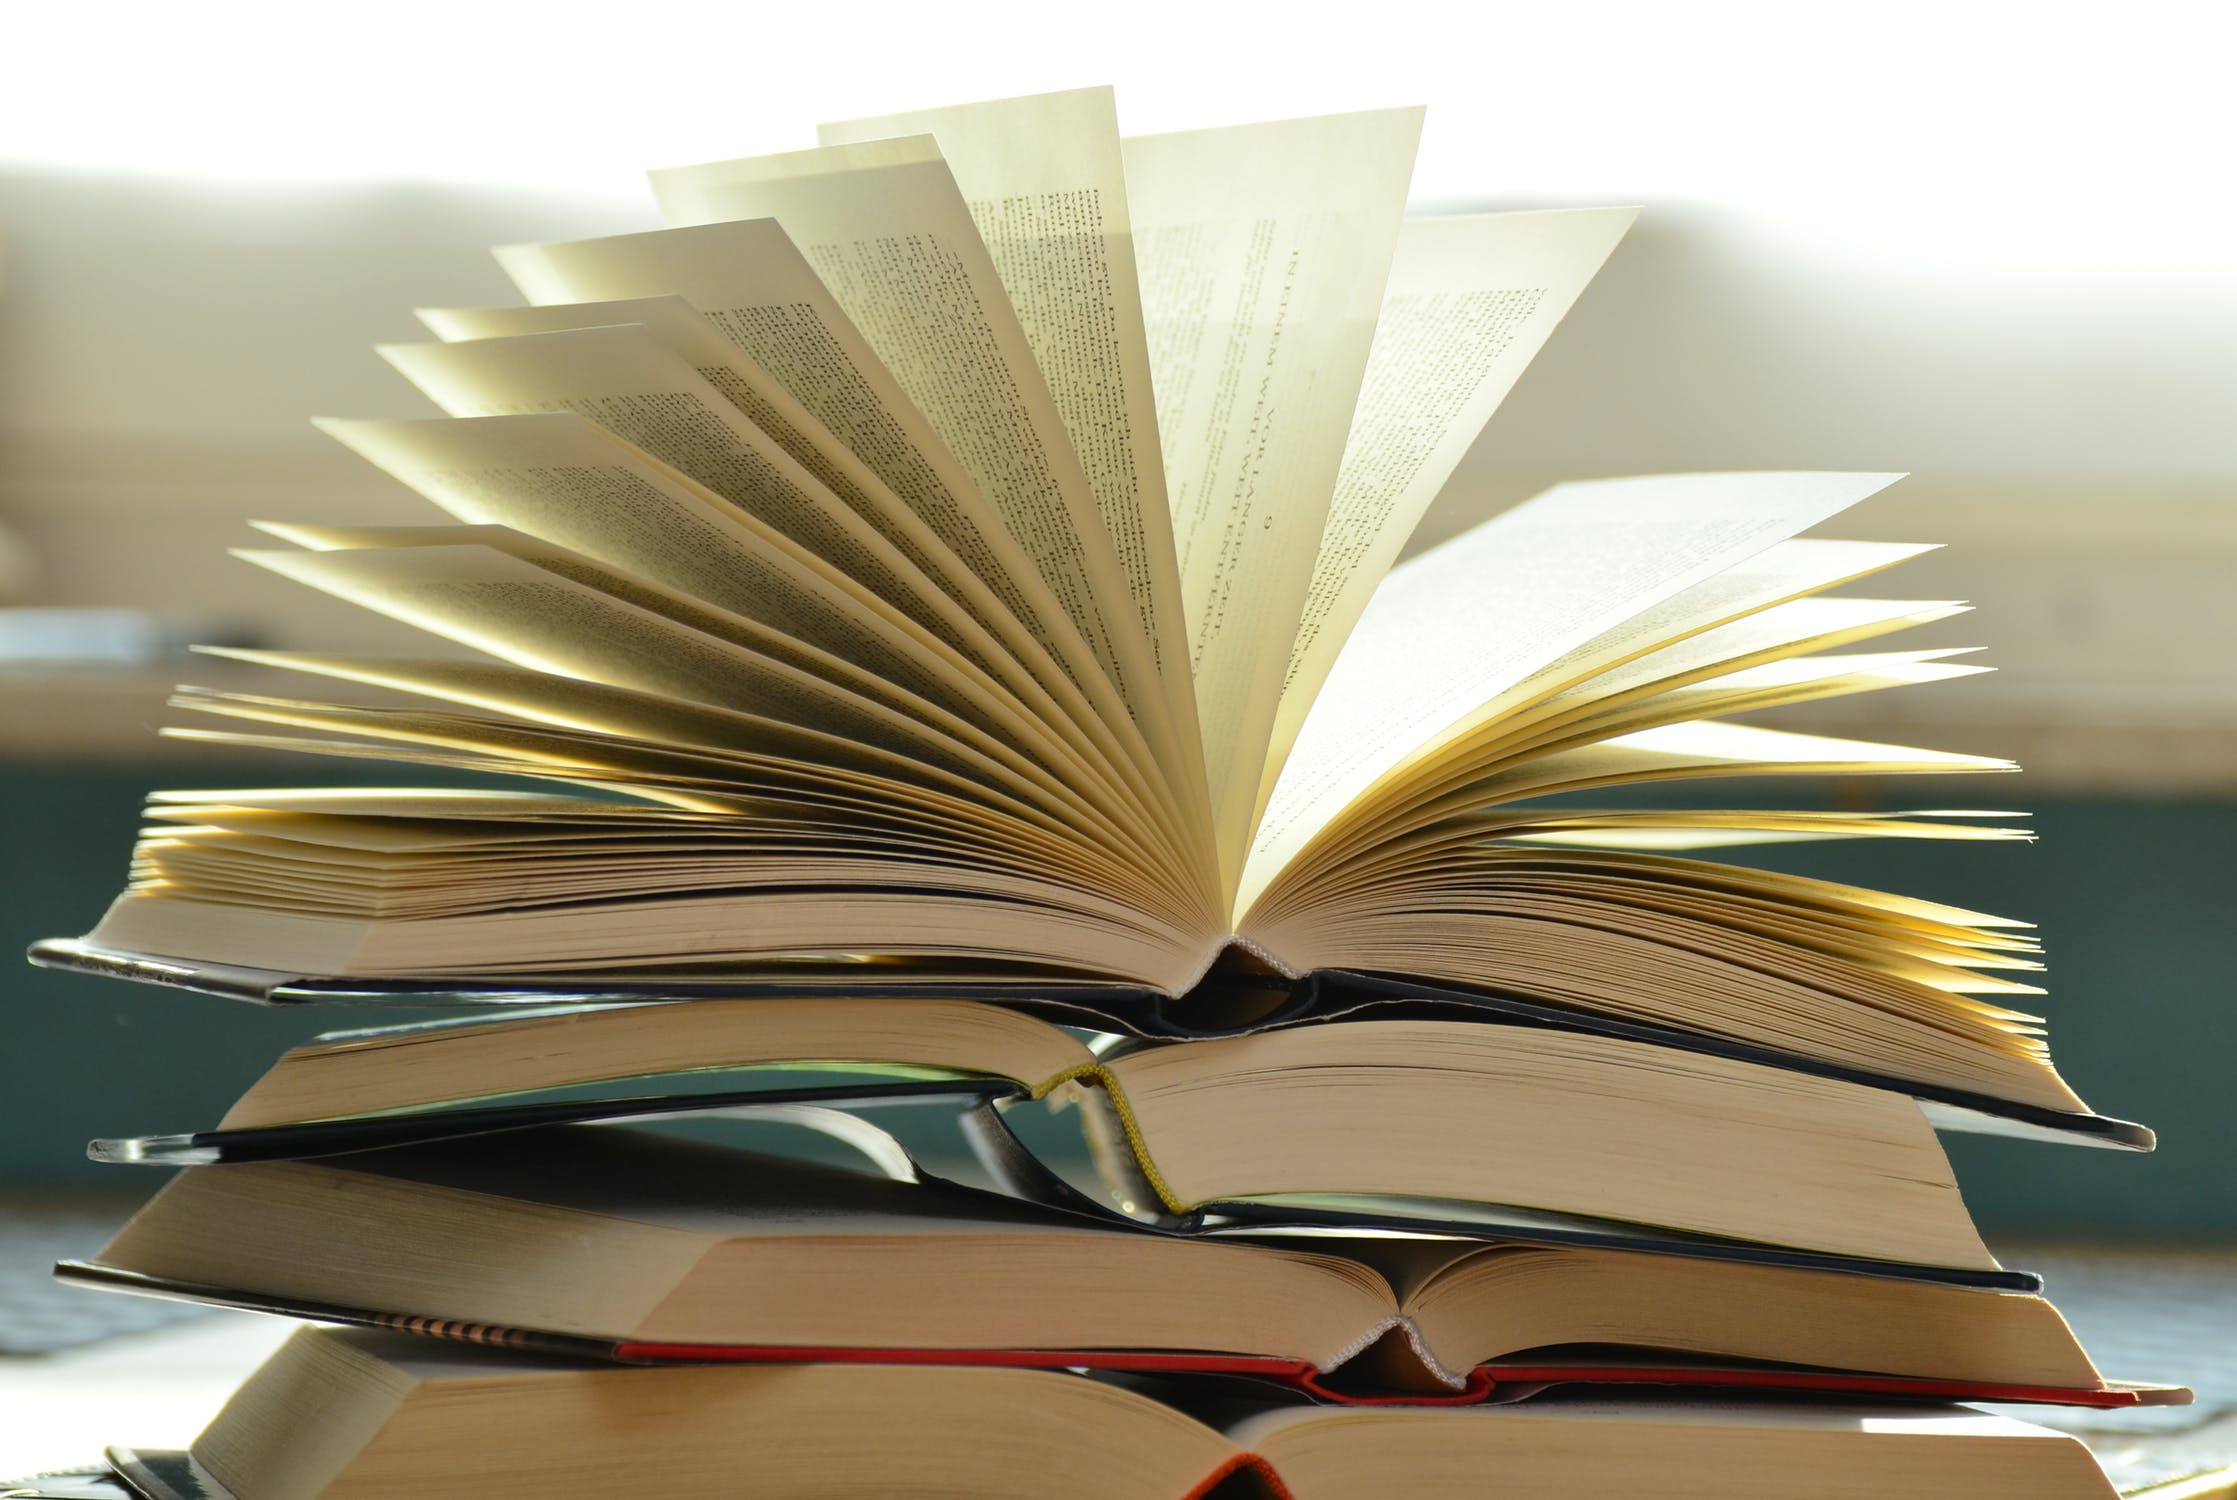 books-book-pages-read-literature-159866.jpeg